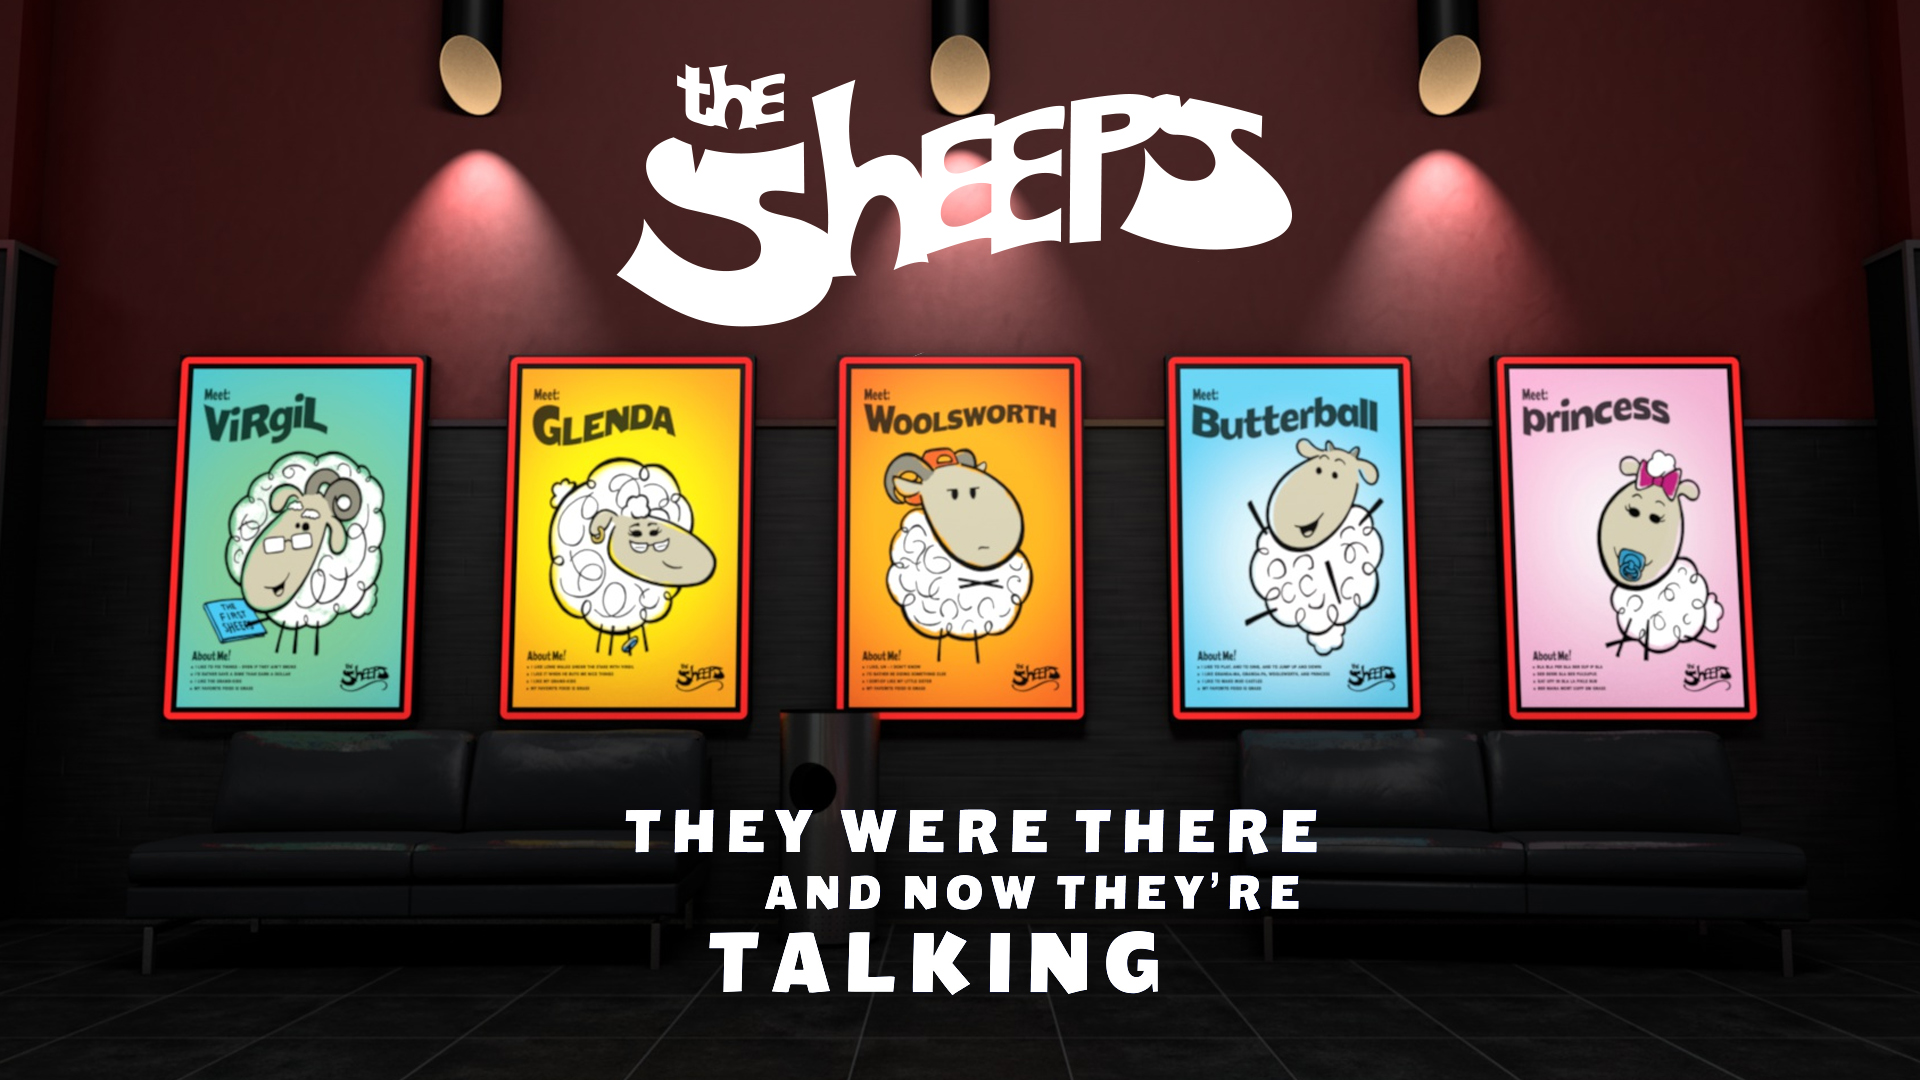 The Sheeps